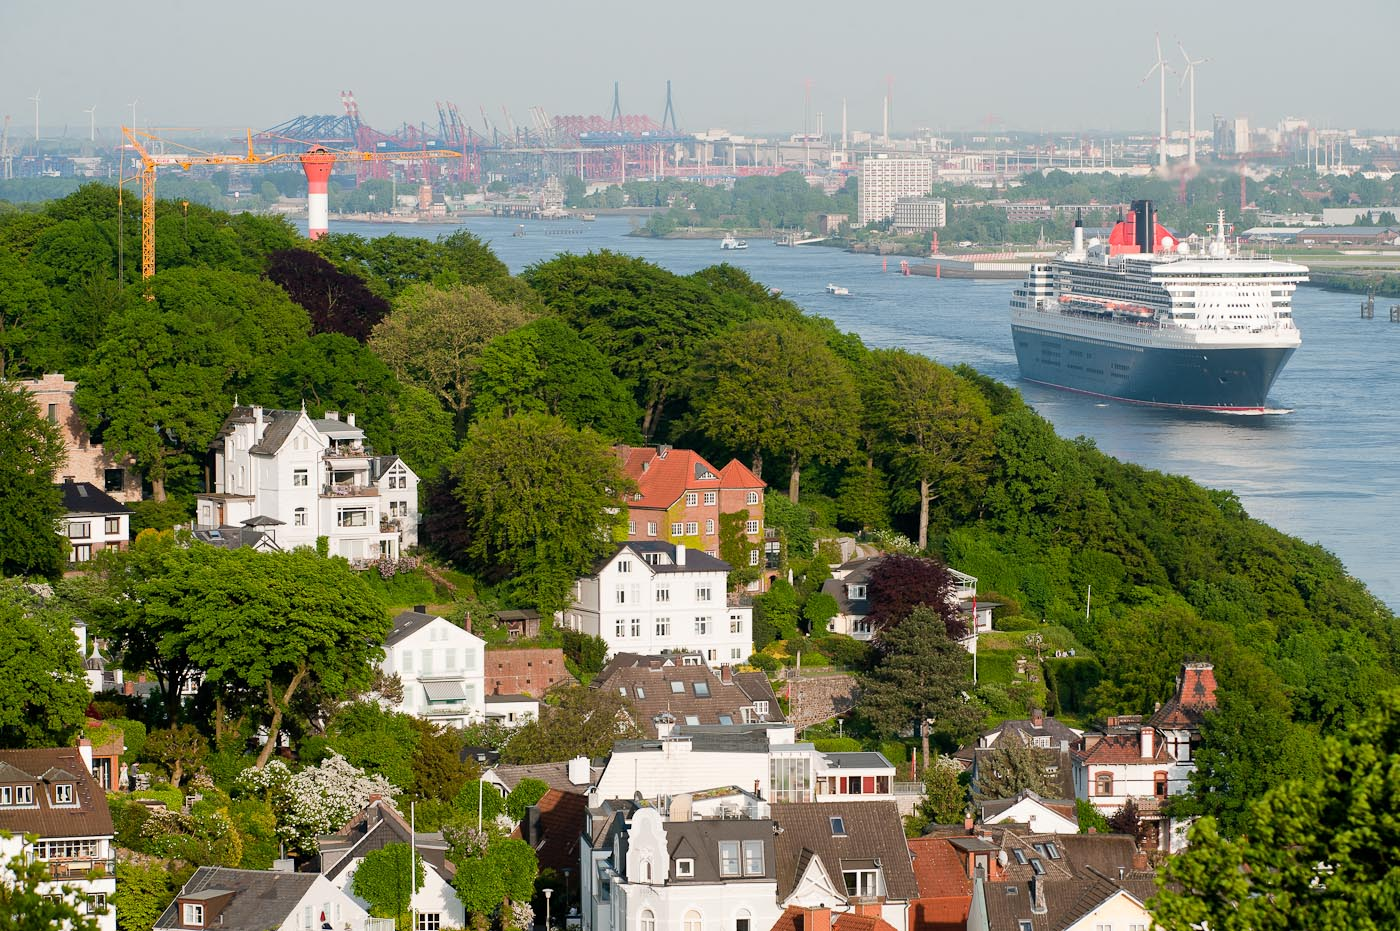 Foto-ID 15002242 Queen Mary 2 Hamburg Blankenese